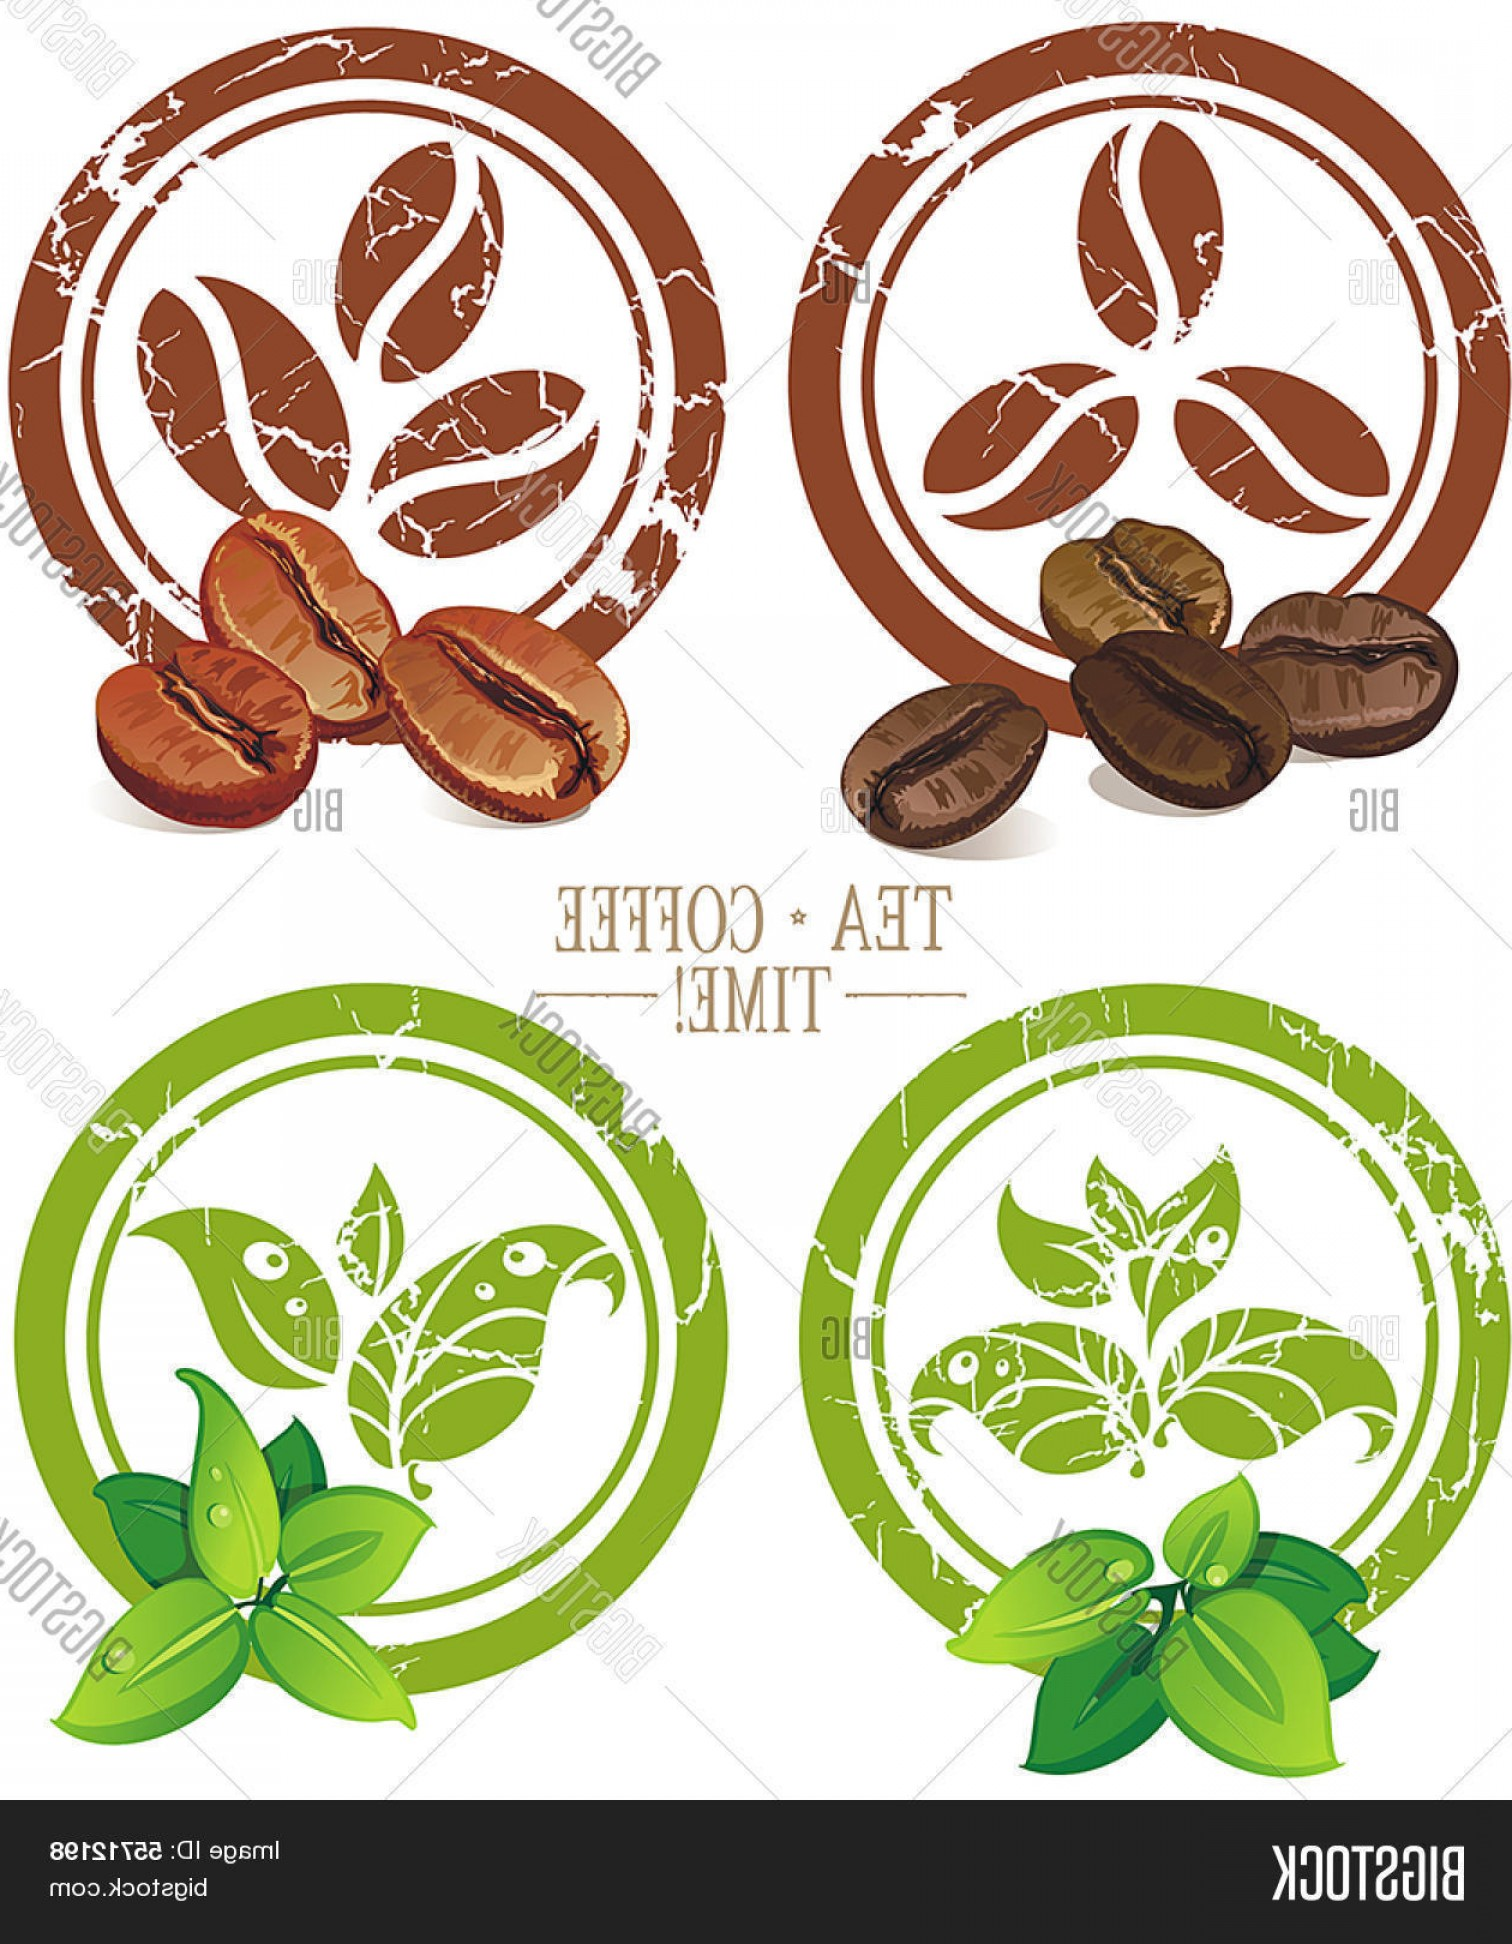 Tea Leaf Vector Art: Stock Vector Set Of Vintage Icons With Coffee Beans And Tea Leaves Vector Illustration